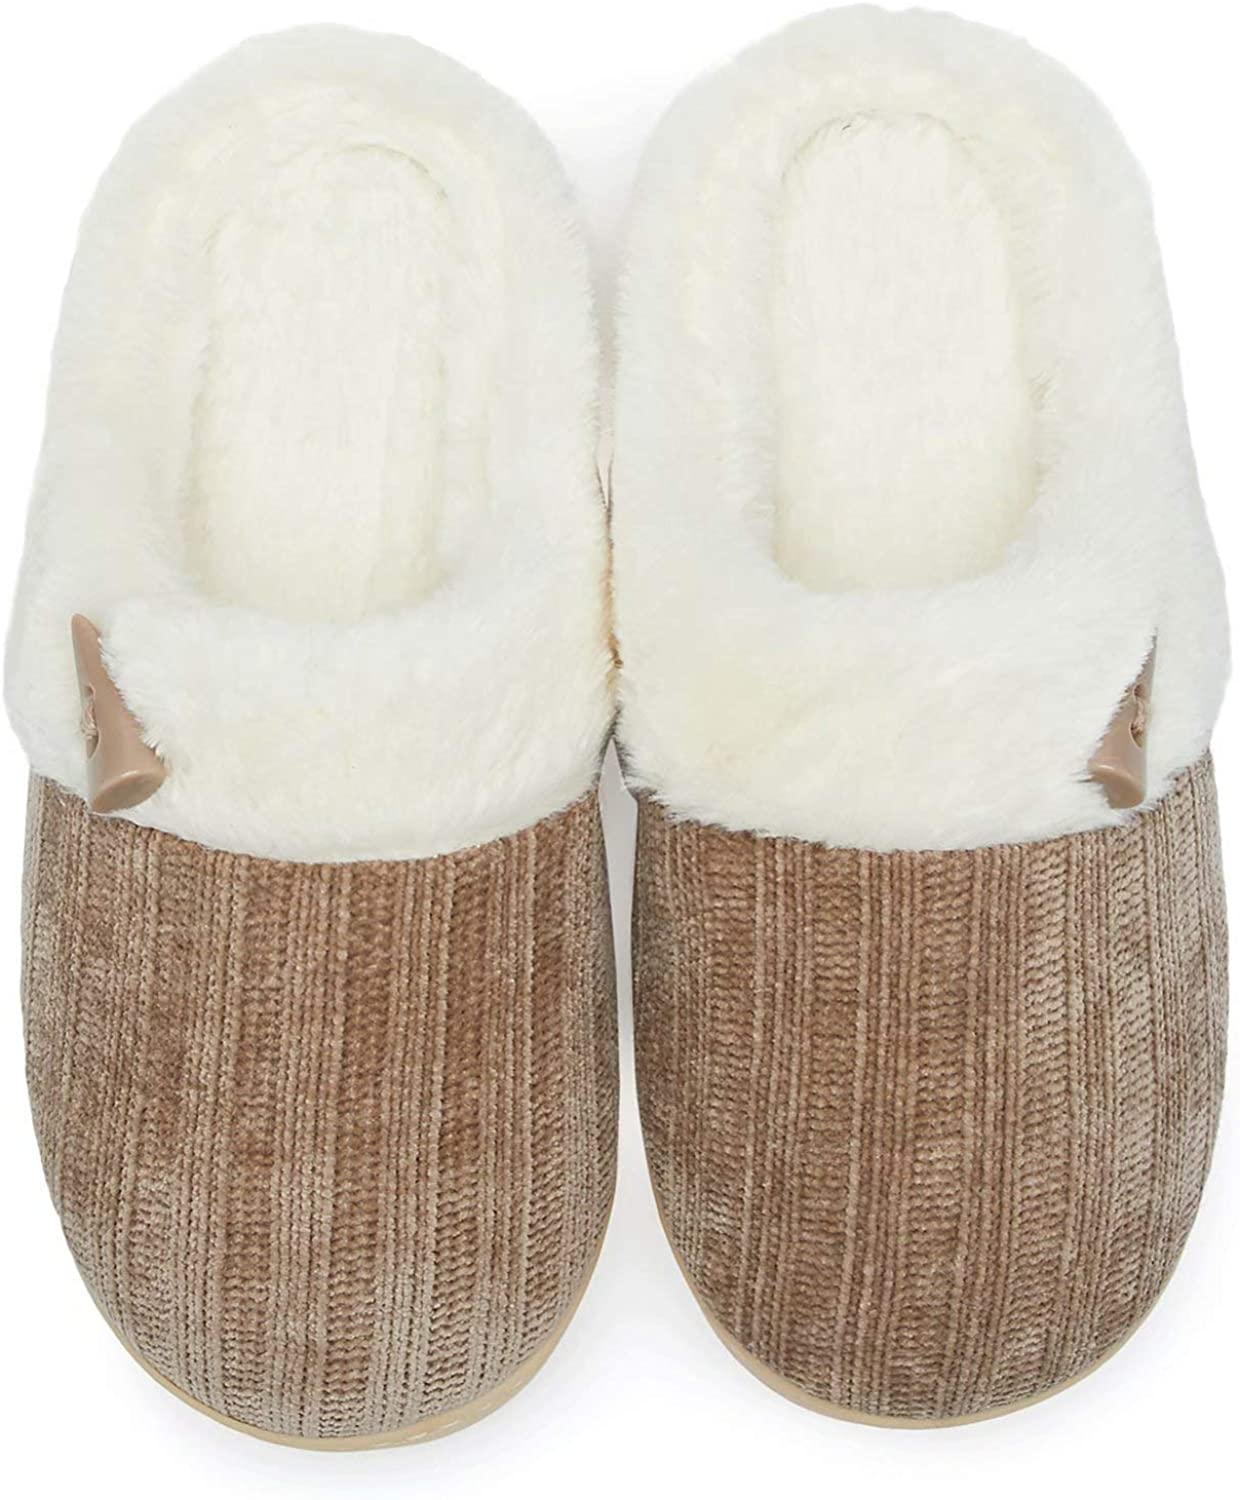 NineCiFun Women's Max 73% OFFicial OFF Comfy House Slippers Foam Memory Bedroom Fuzzy